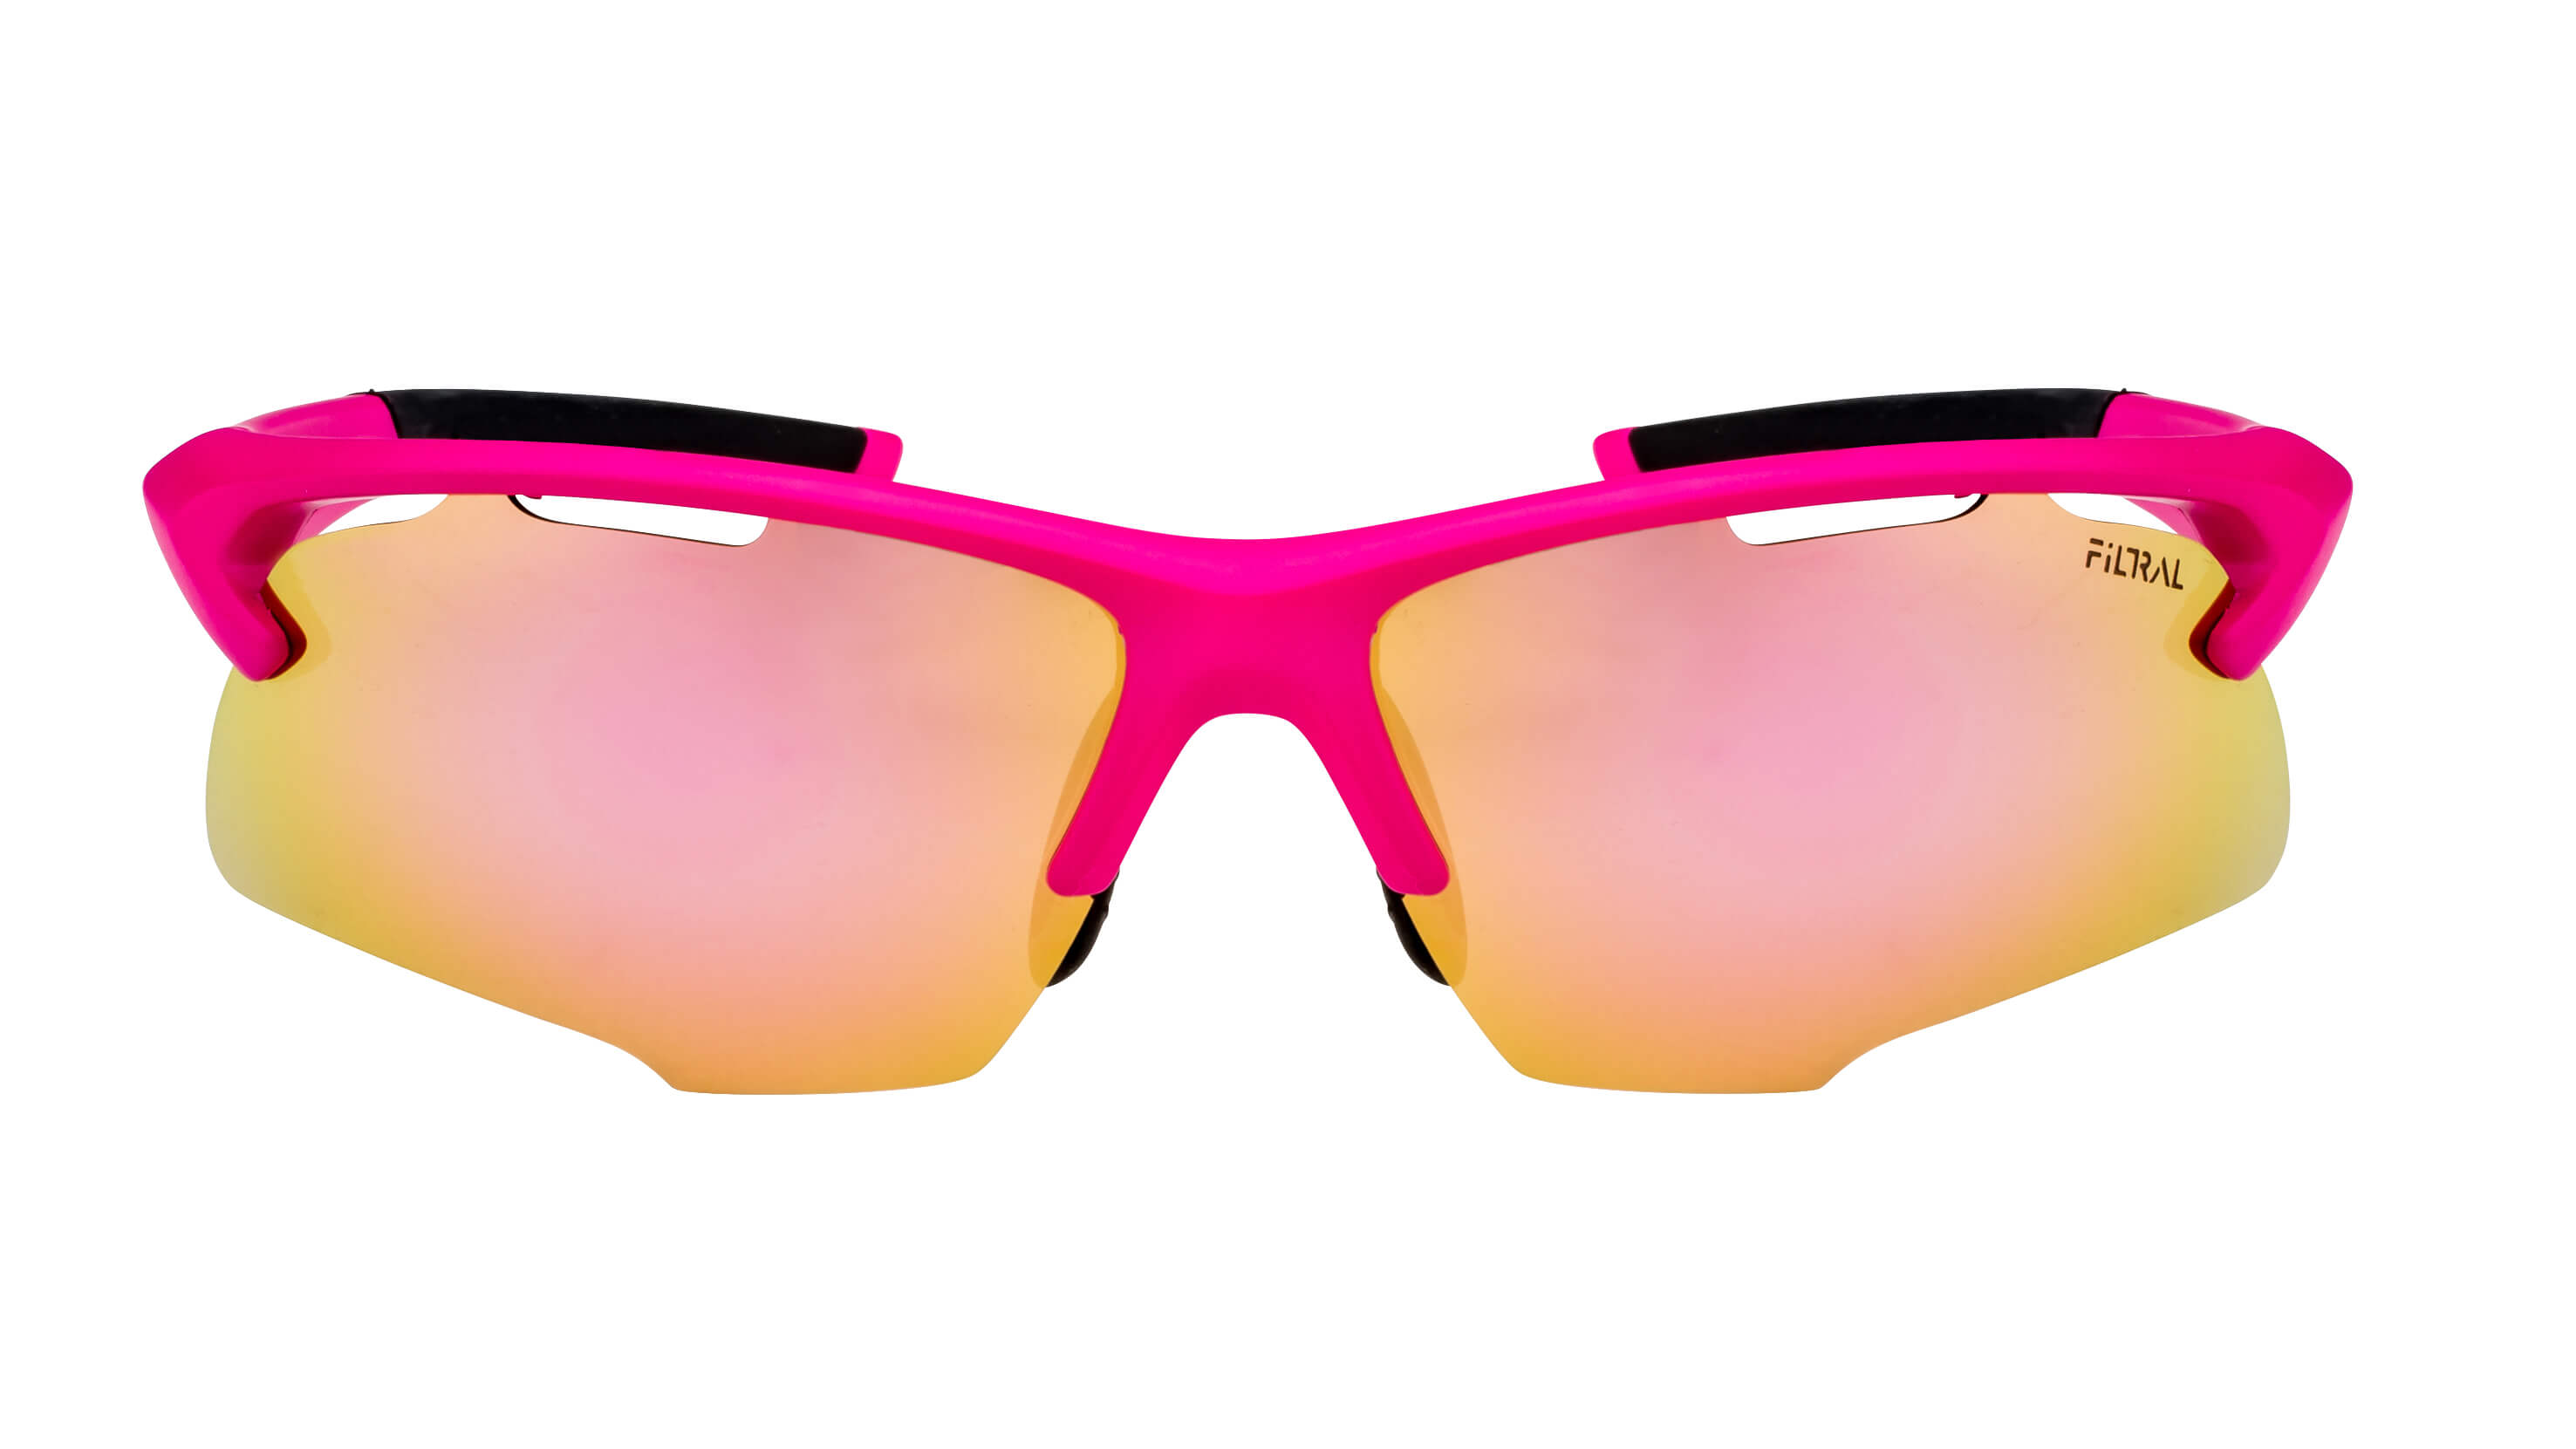 Front view sunglasses F3010000